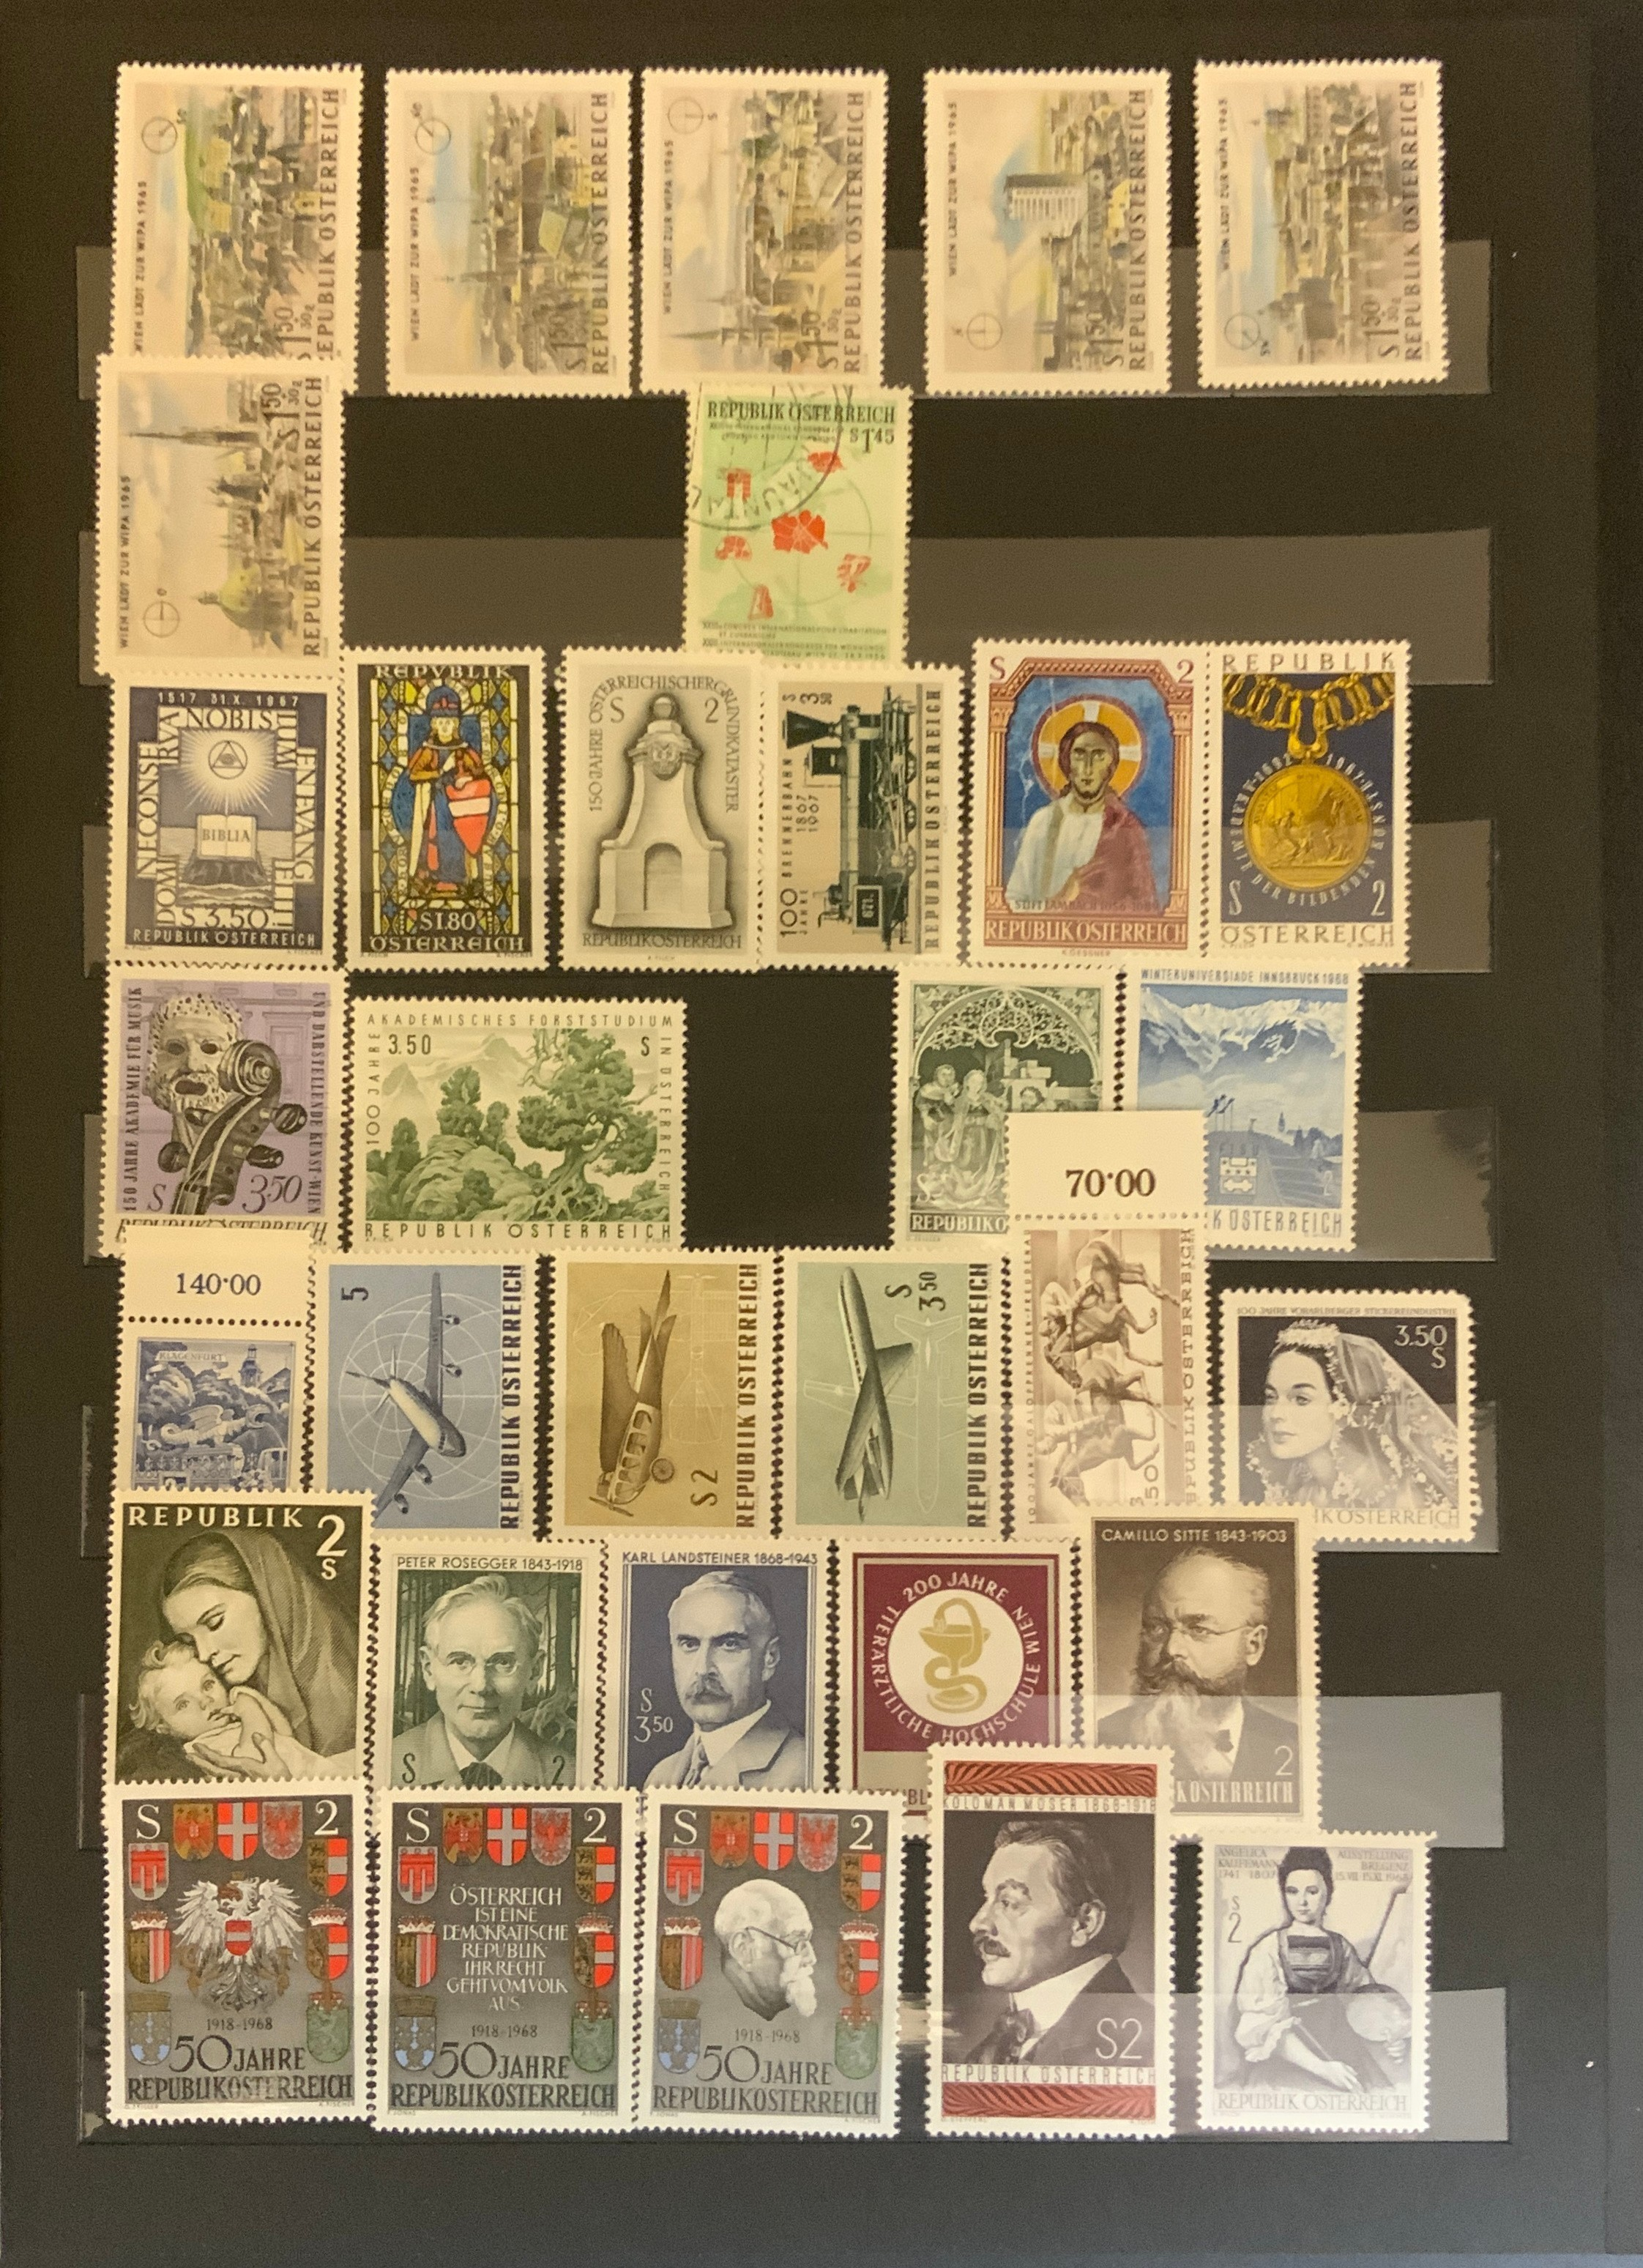 STOCKBOOK WITH STAMPS FROM VARIOUS COUNTRIES INCLUDING AUSTRIA, BELGIUM, FRANCE - Image 13 of 16